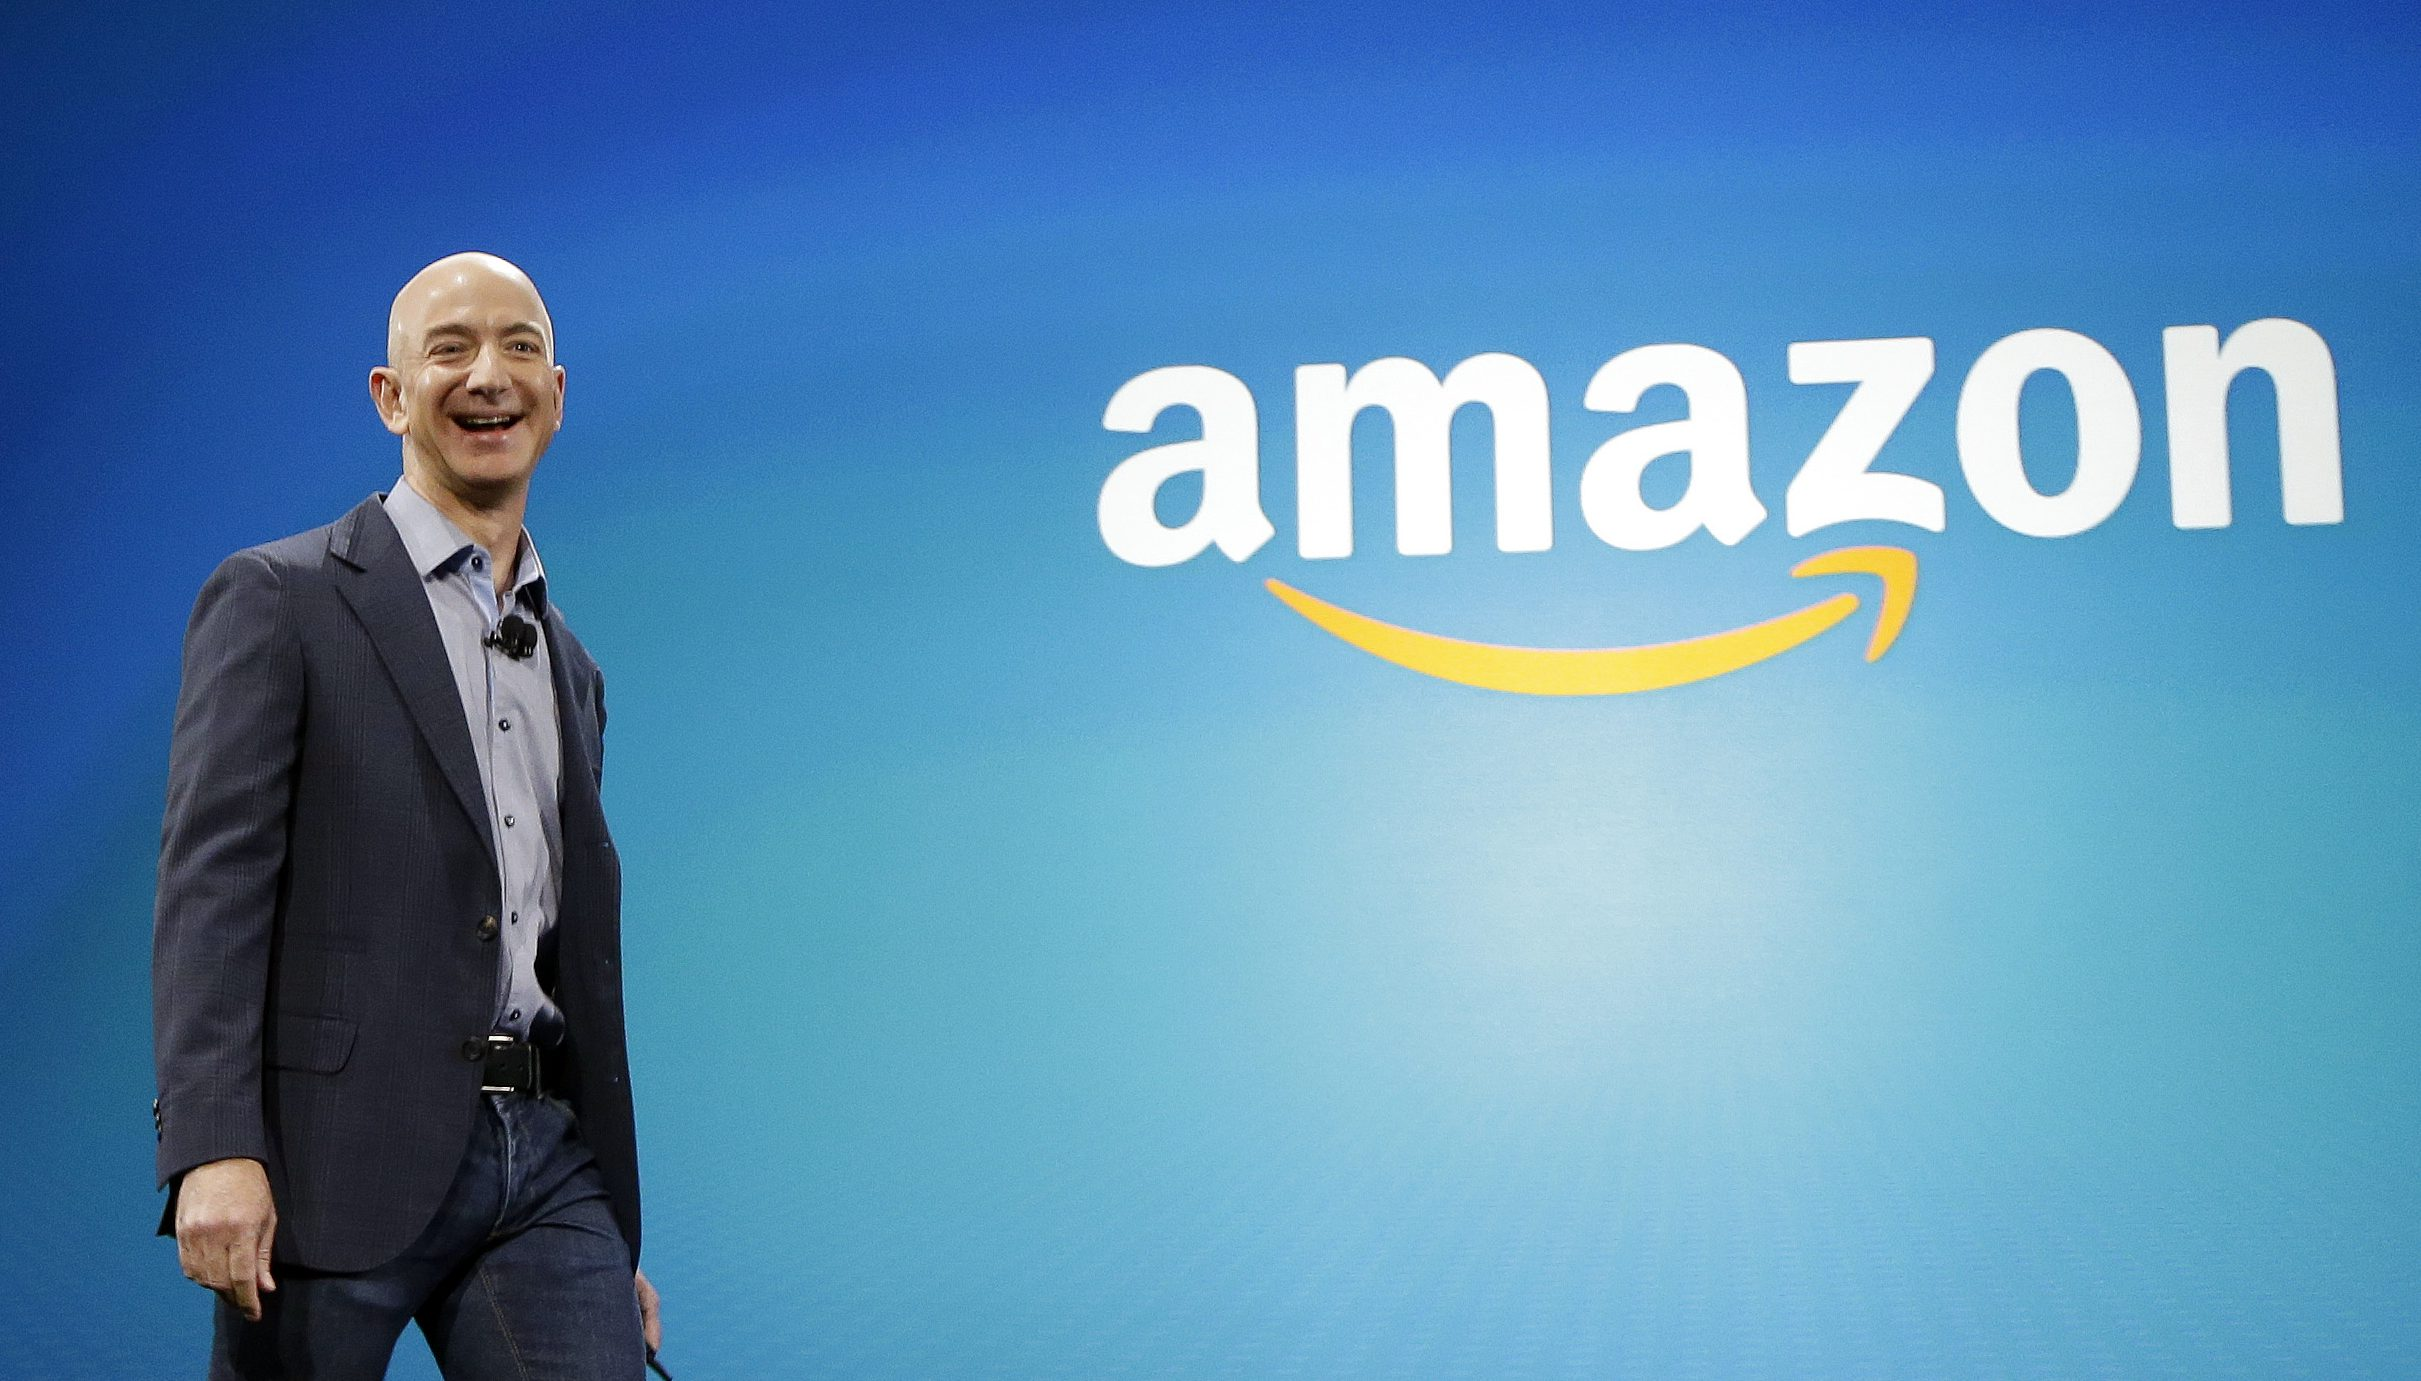 In this June 16, 2014, file photo, Amazon CEO Jeff Bezos walks onstage for the launch of the new Amazon Fire Phone, in Seattle. Bezos offered a glimpse of his vision for the future during an interview on May 31, 2016, at the Code Conference in Rancho Palos Verdes, Calif.